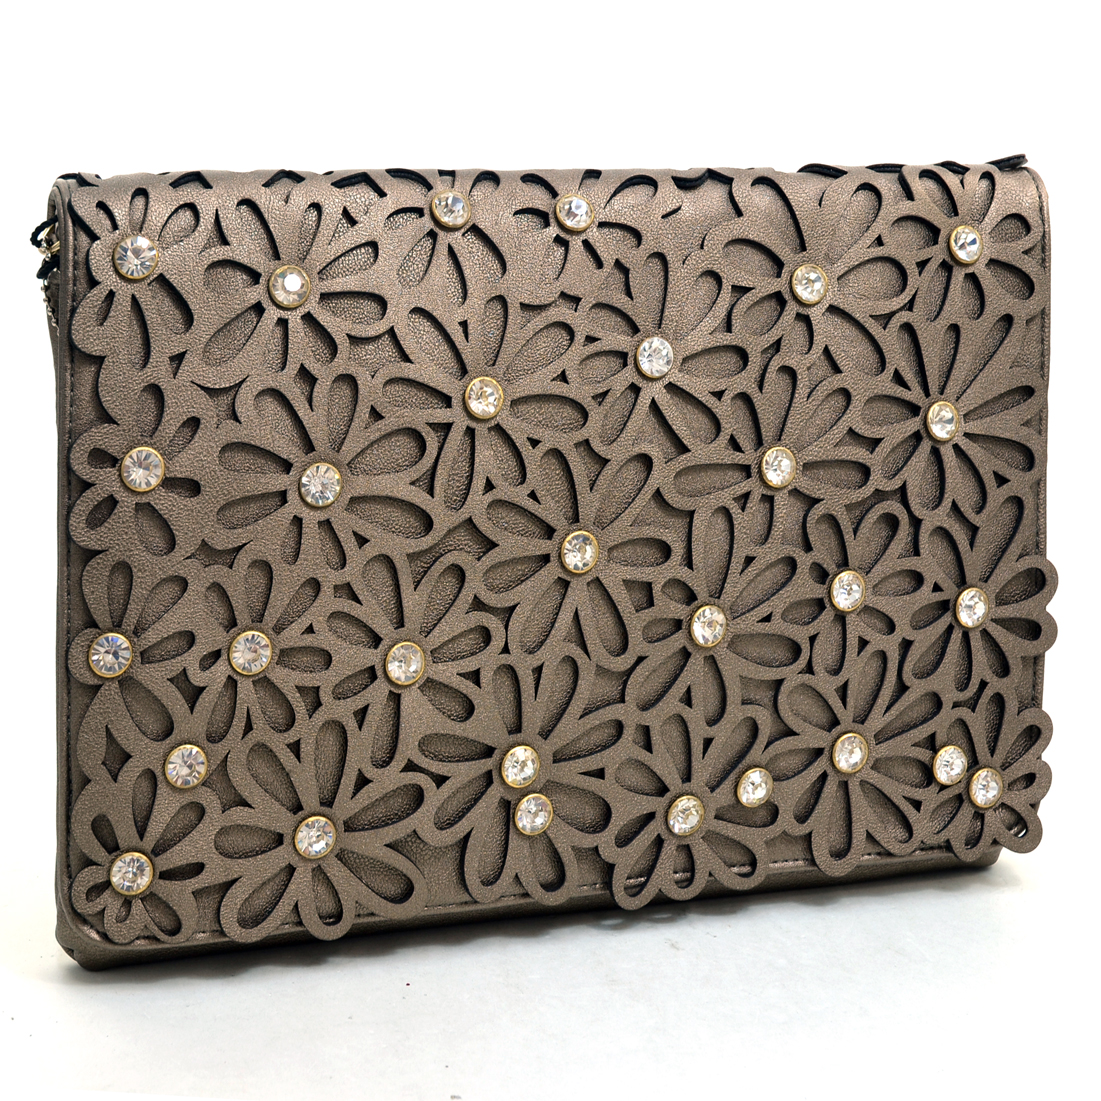 Dasein® Large Floral Cutout Clutch With Rhinestones